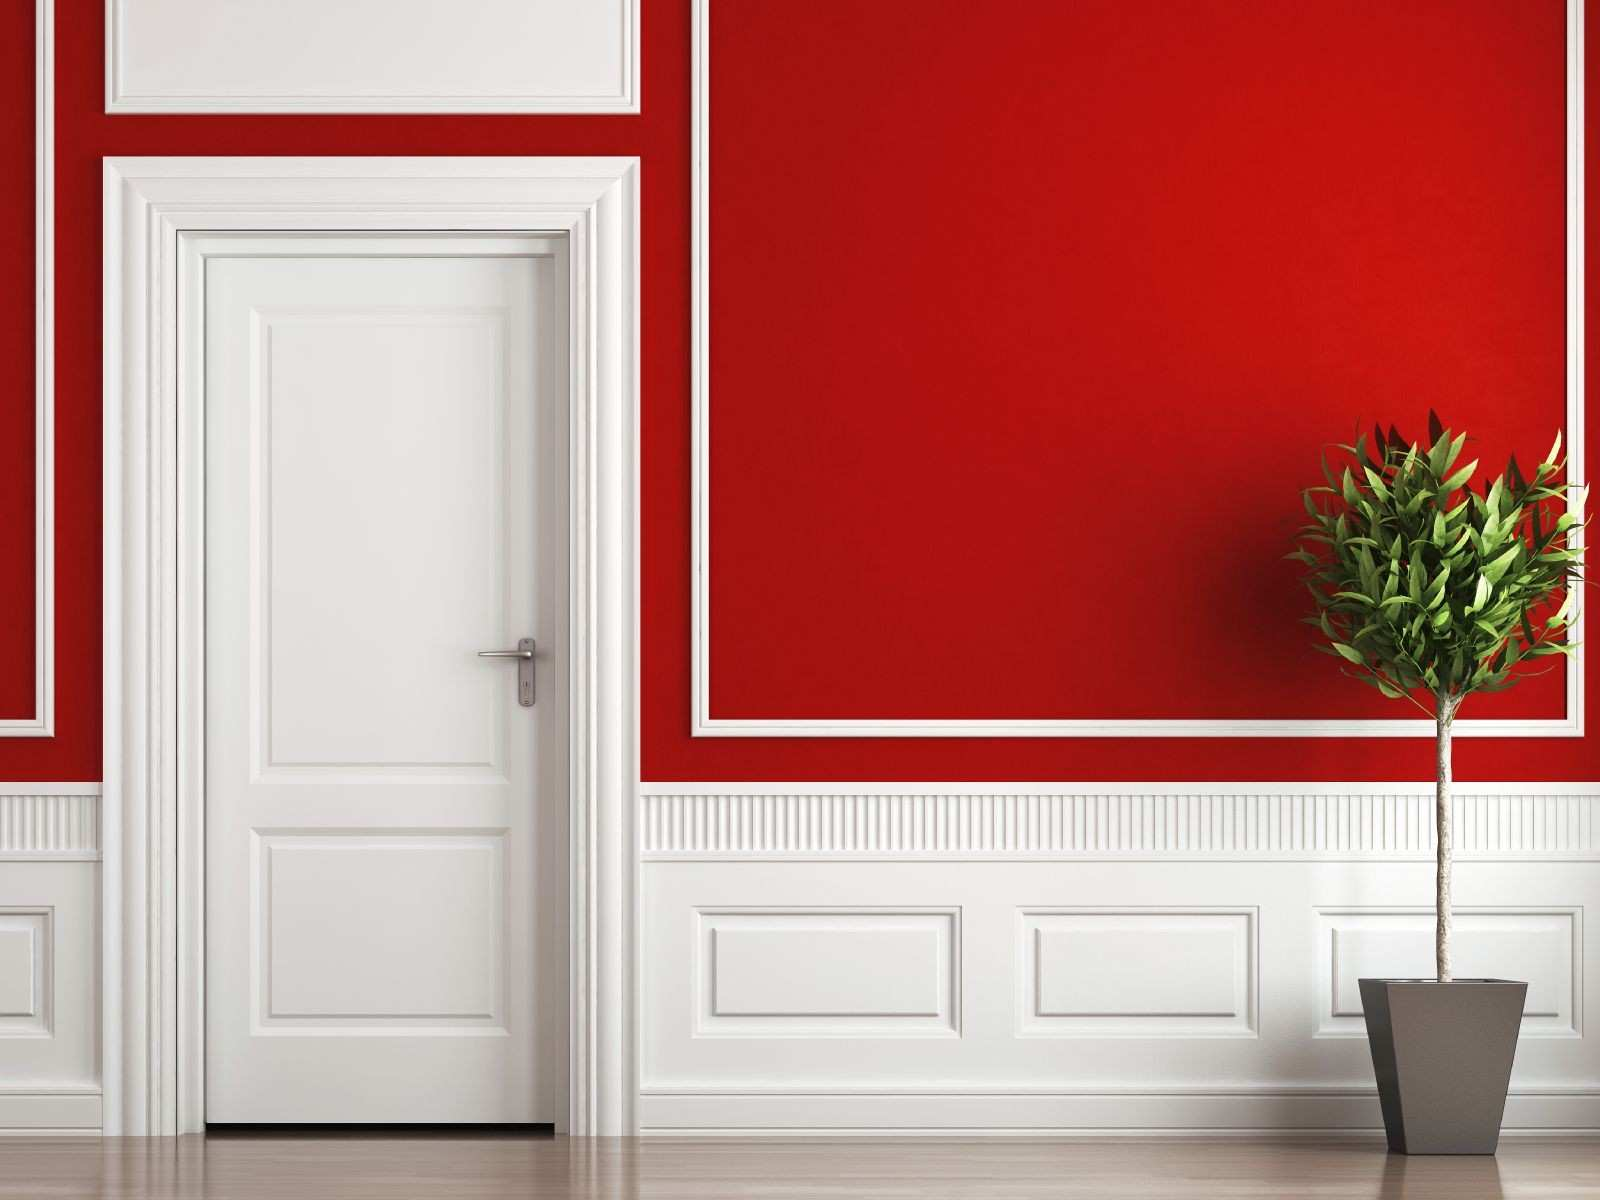 Red Walls & White Molding White picture frame molding gives this